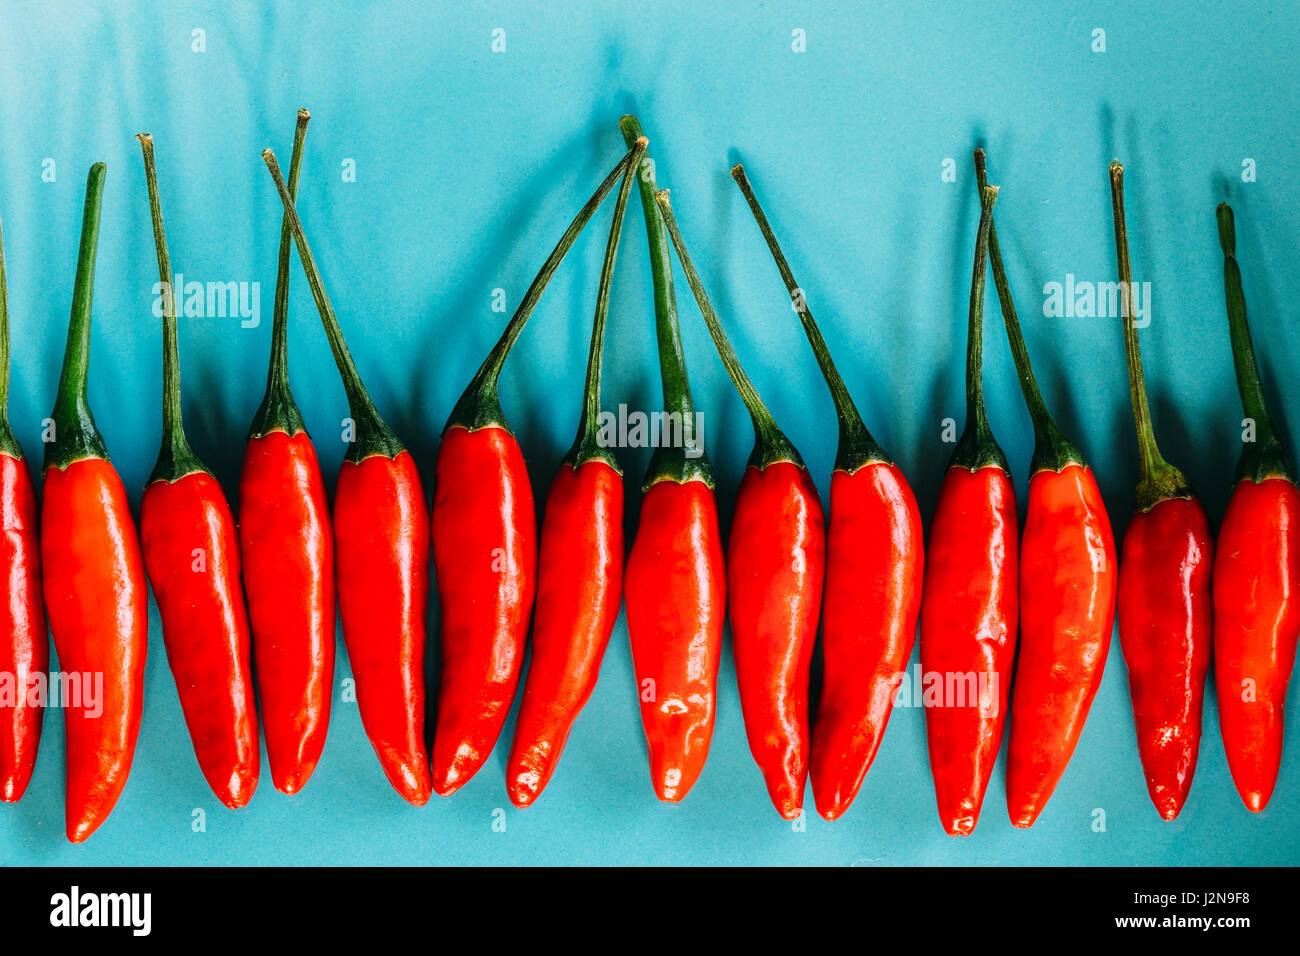 Red chillies - Stock Image